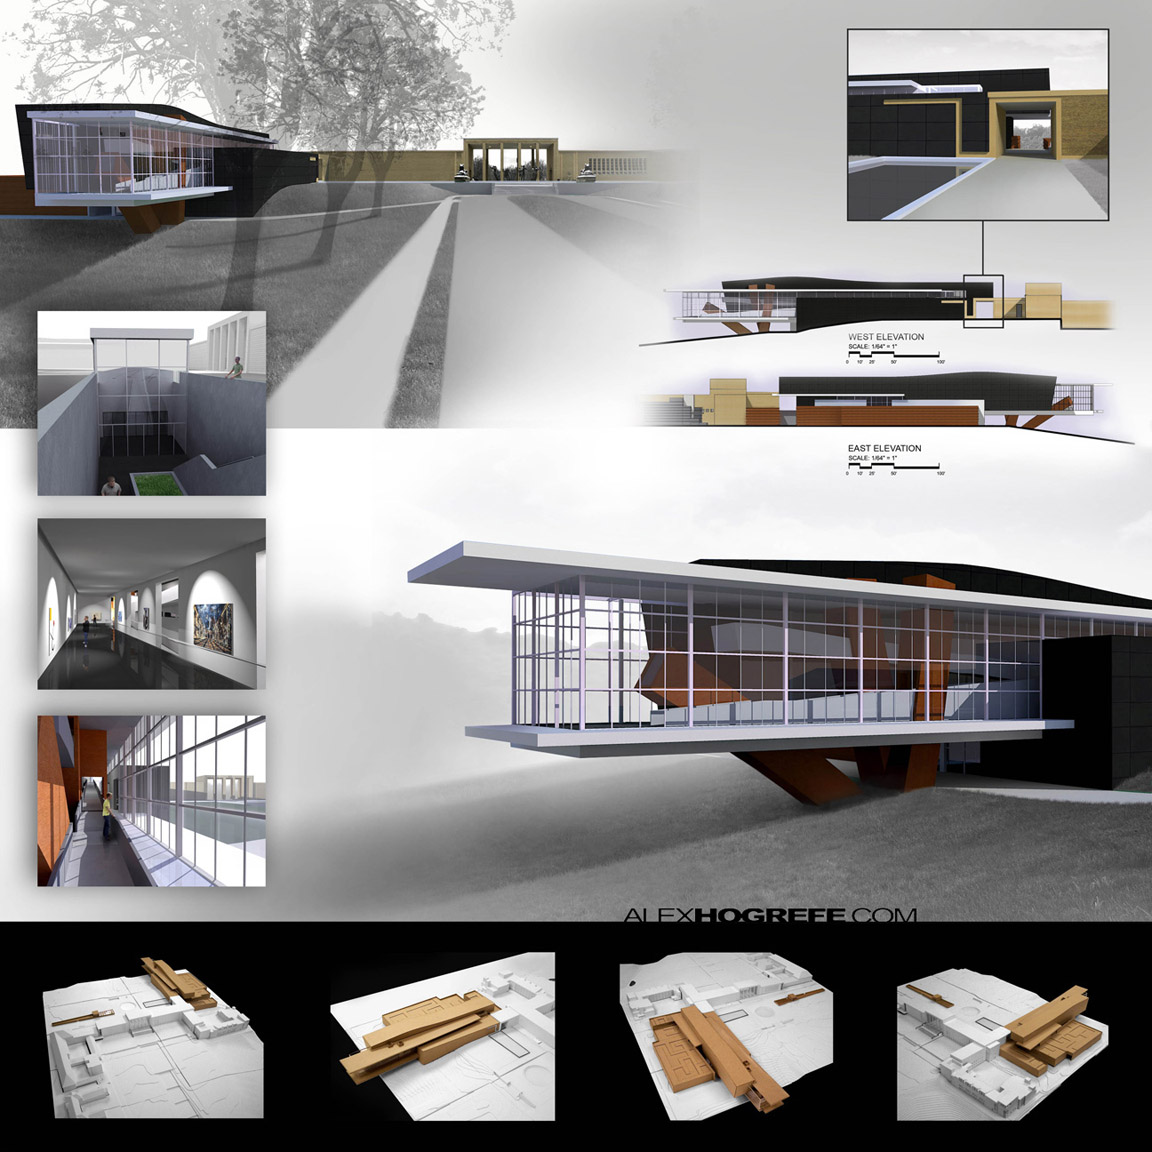 Architecture student presentation layout for Architecture student